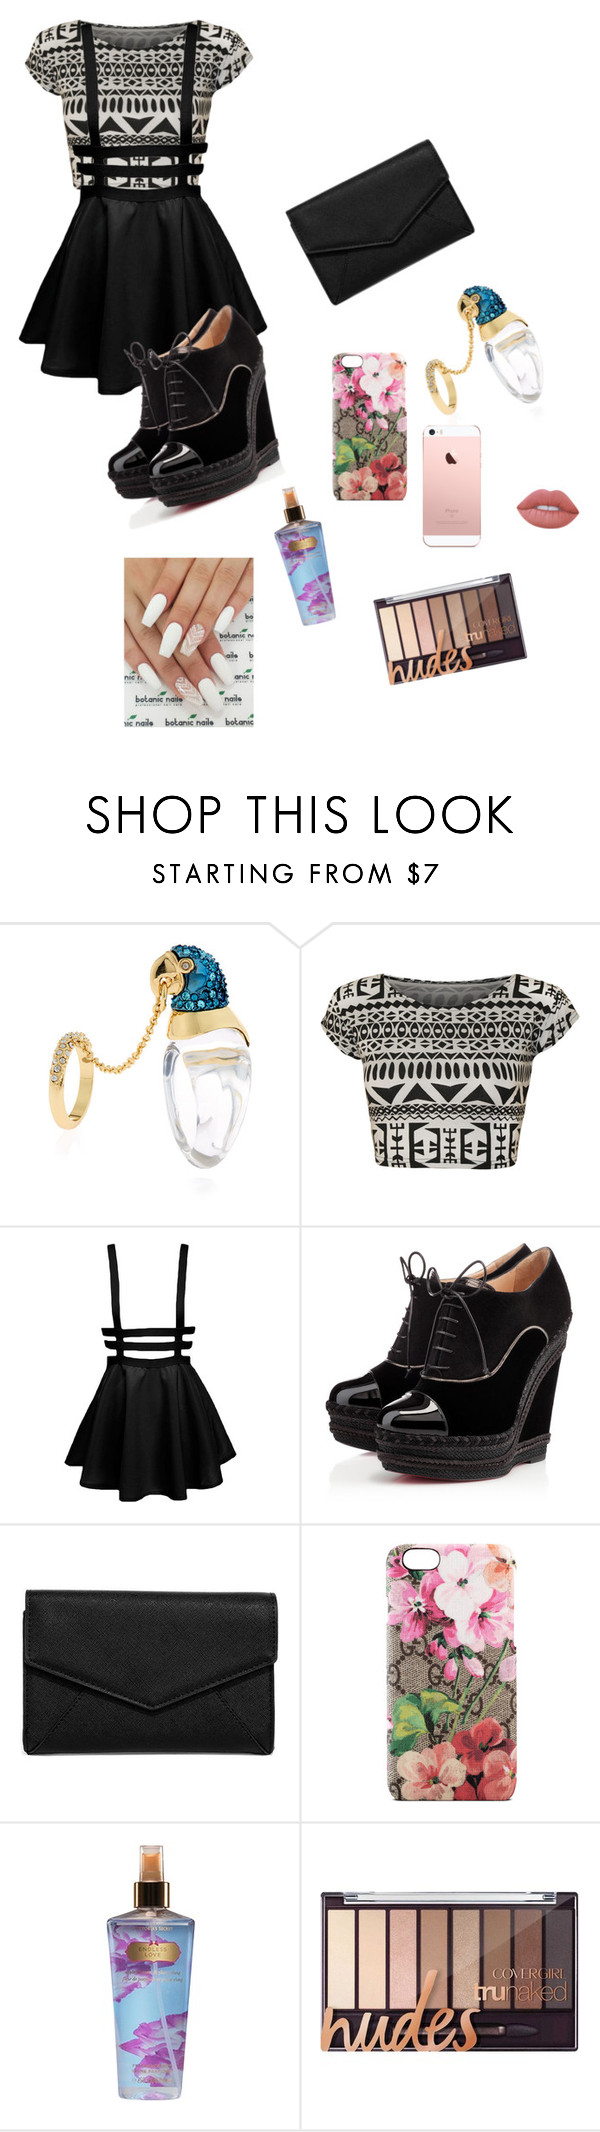 """""""Untitled #247"""" by sophiehemmings18 ❤ liked on Polyvore featuring Alexis Bittar, WearAll, Christian Louboutin, LULUS, Gucci, Victoria's Secret and Lime Crime"""